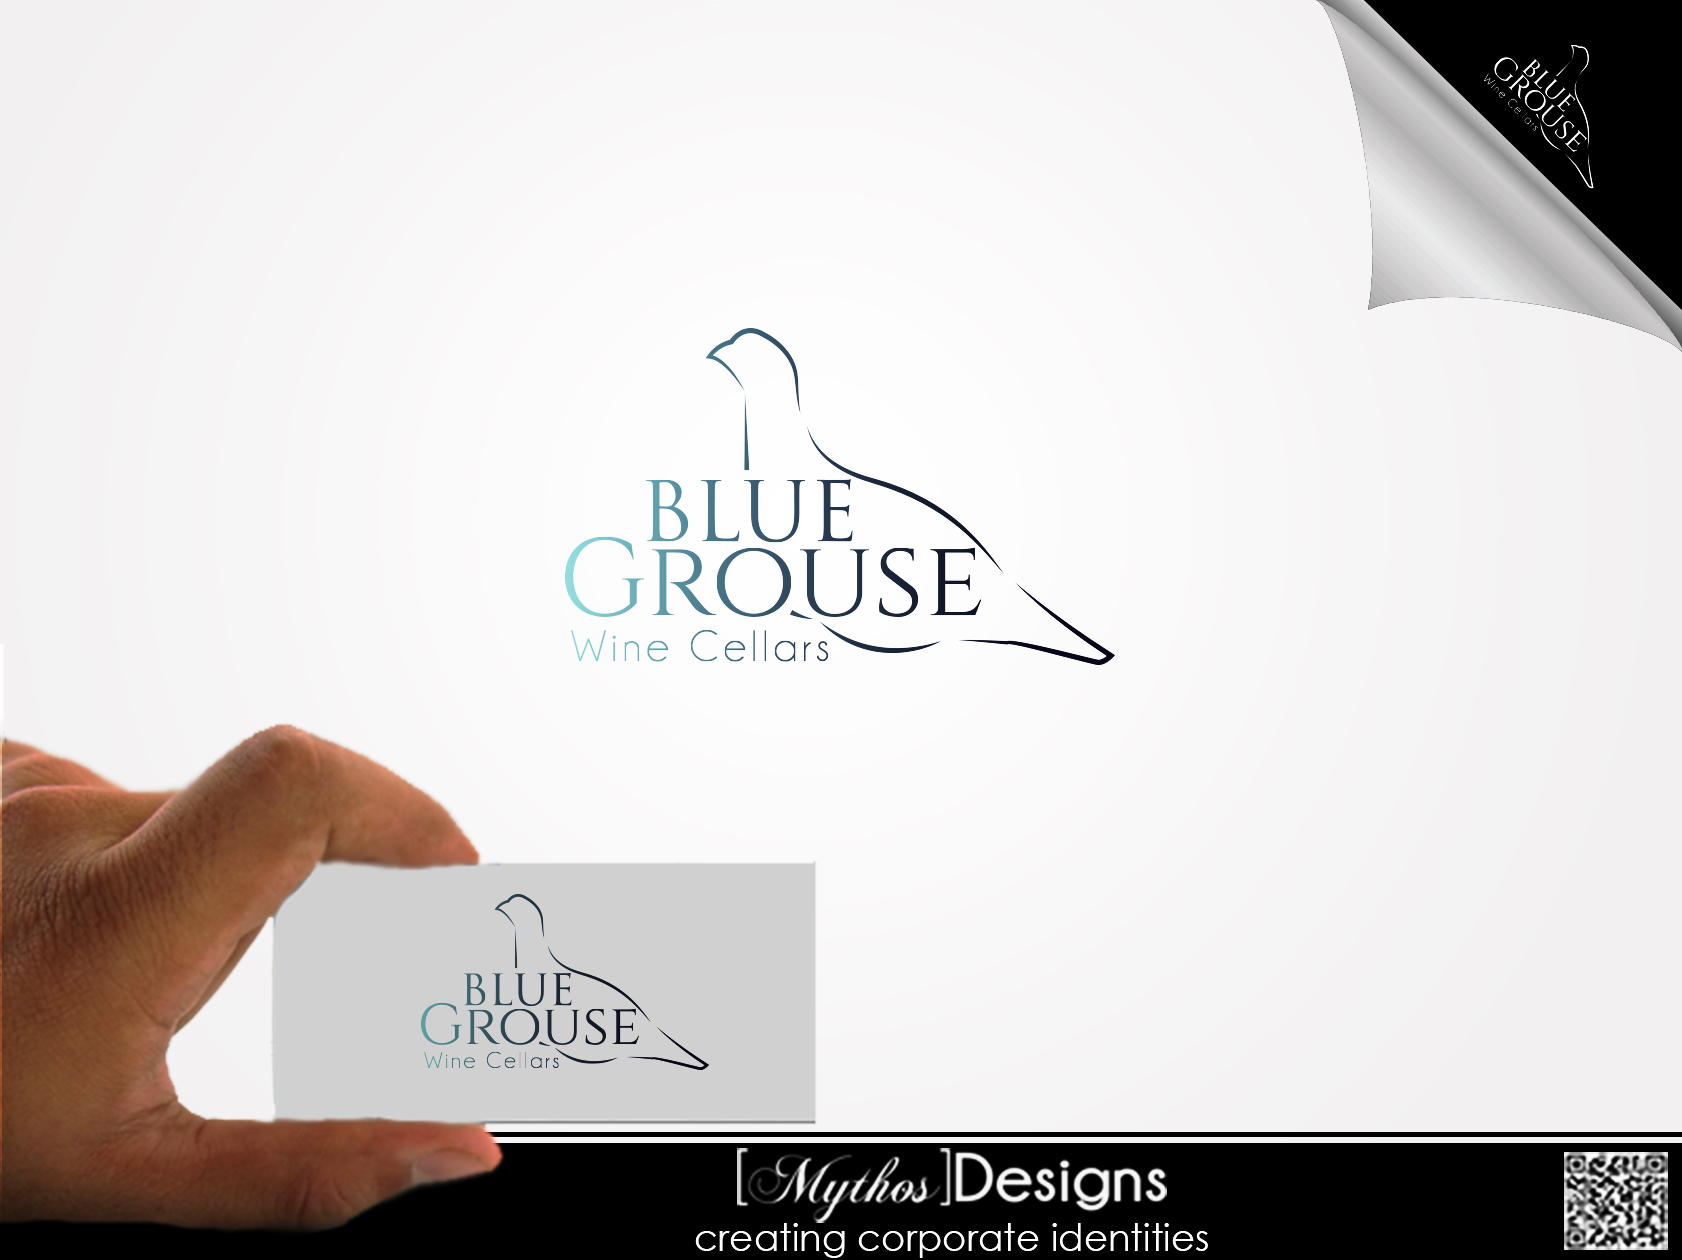 Logo Design by Mythos Designs - Entry No. 83 in the Logo Design Contest Creative Logo Design for Blue Grouse Wine Cellars.